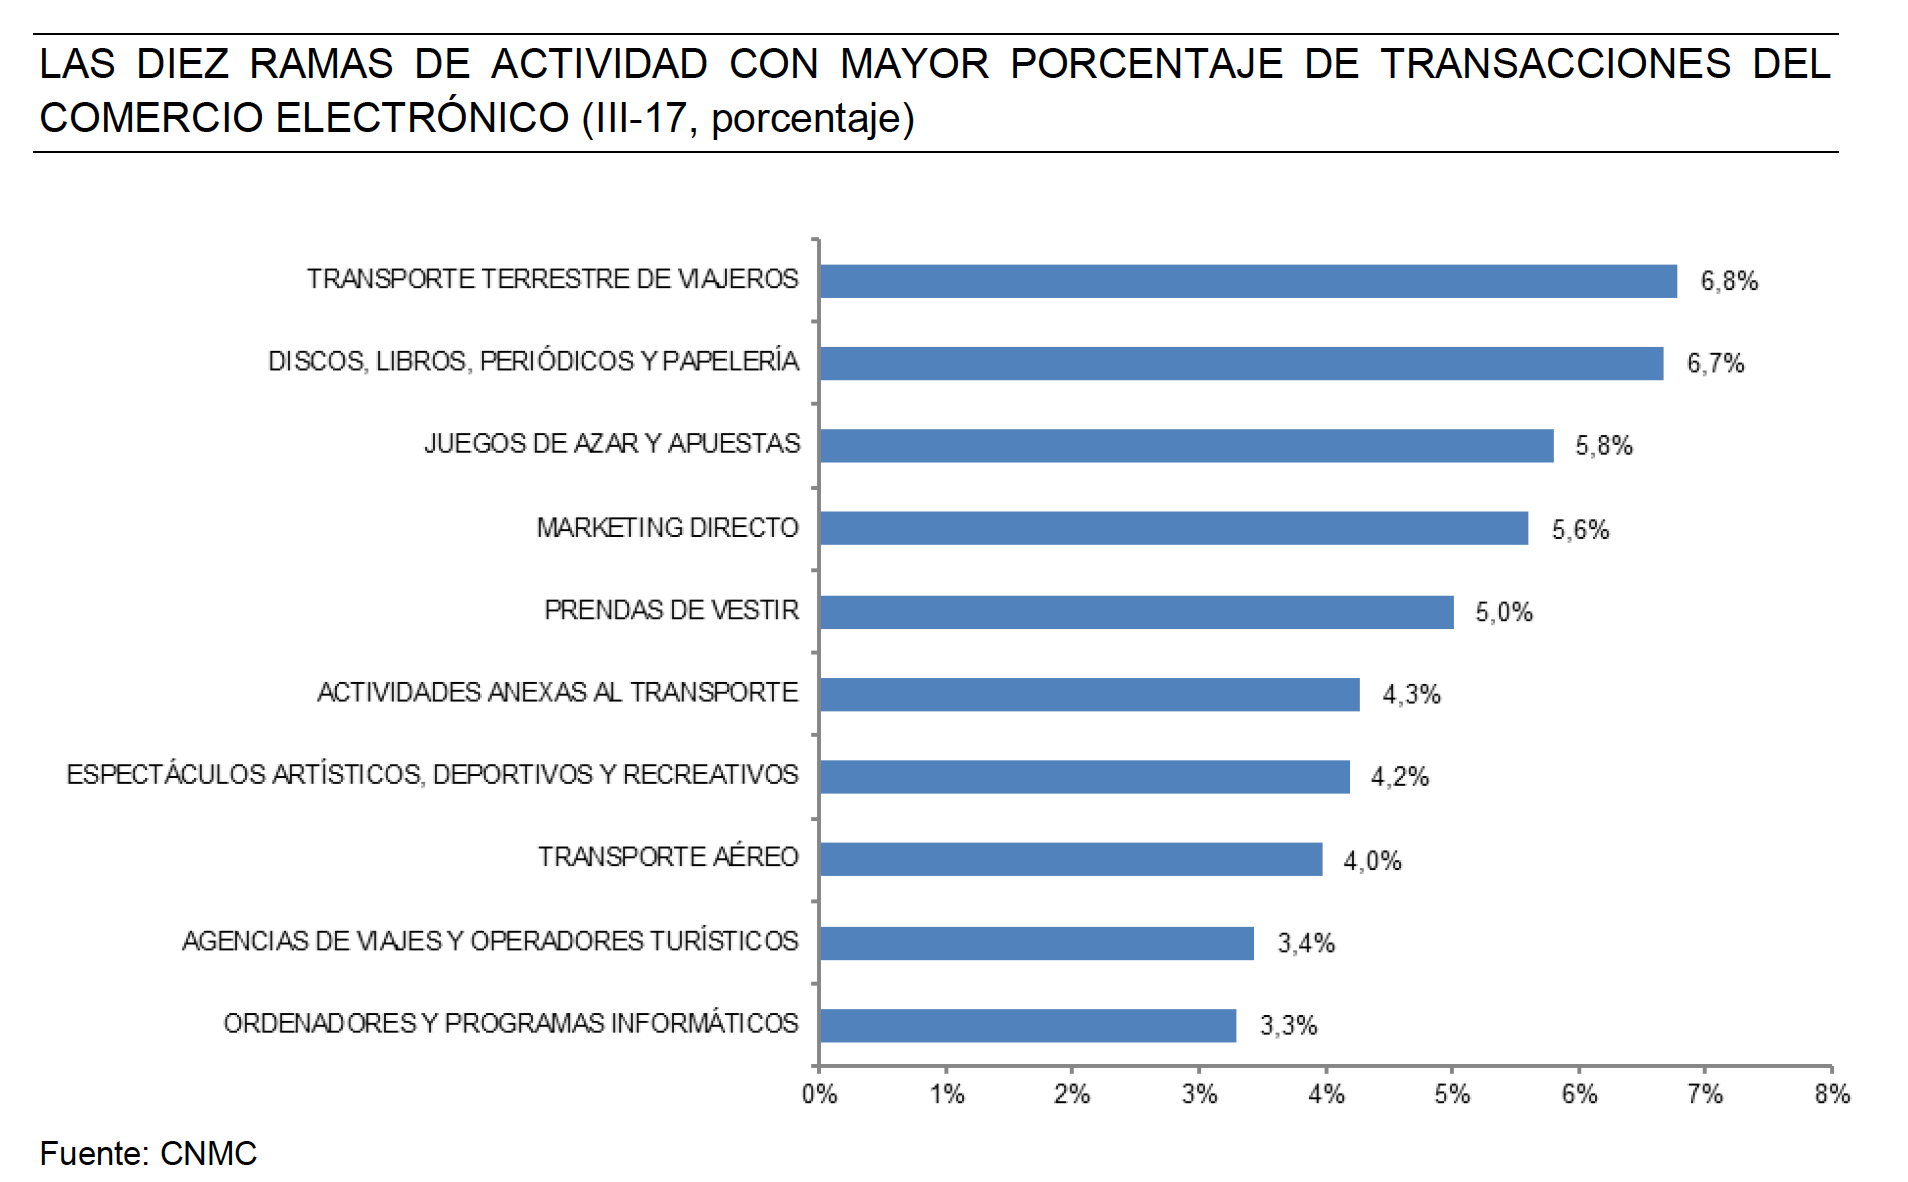 the sale of transport tickets is the sector with more transactions online in Spain